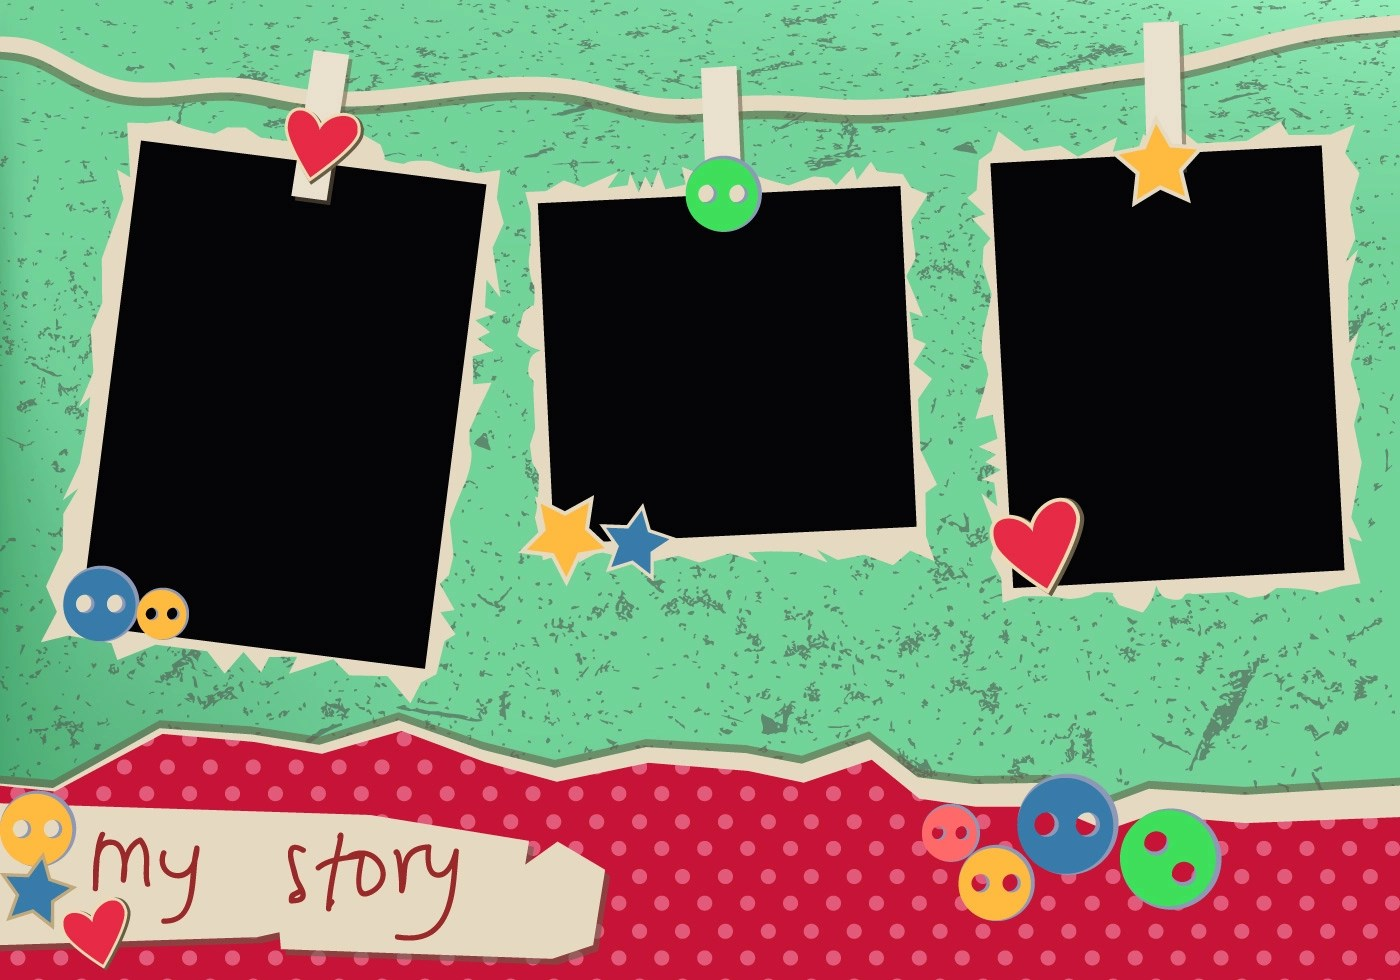 My Story Vintage Polaroid Frames Download Free Vector